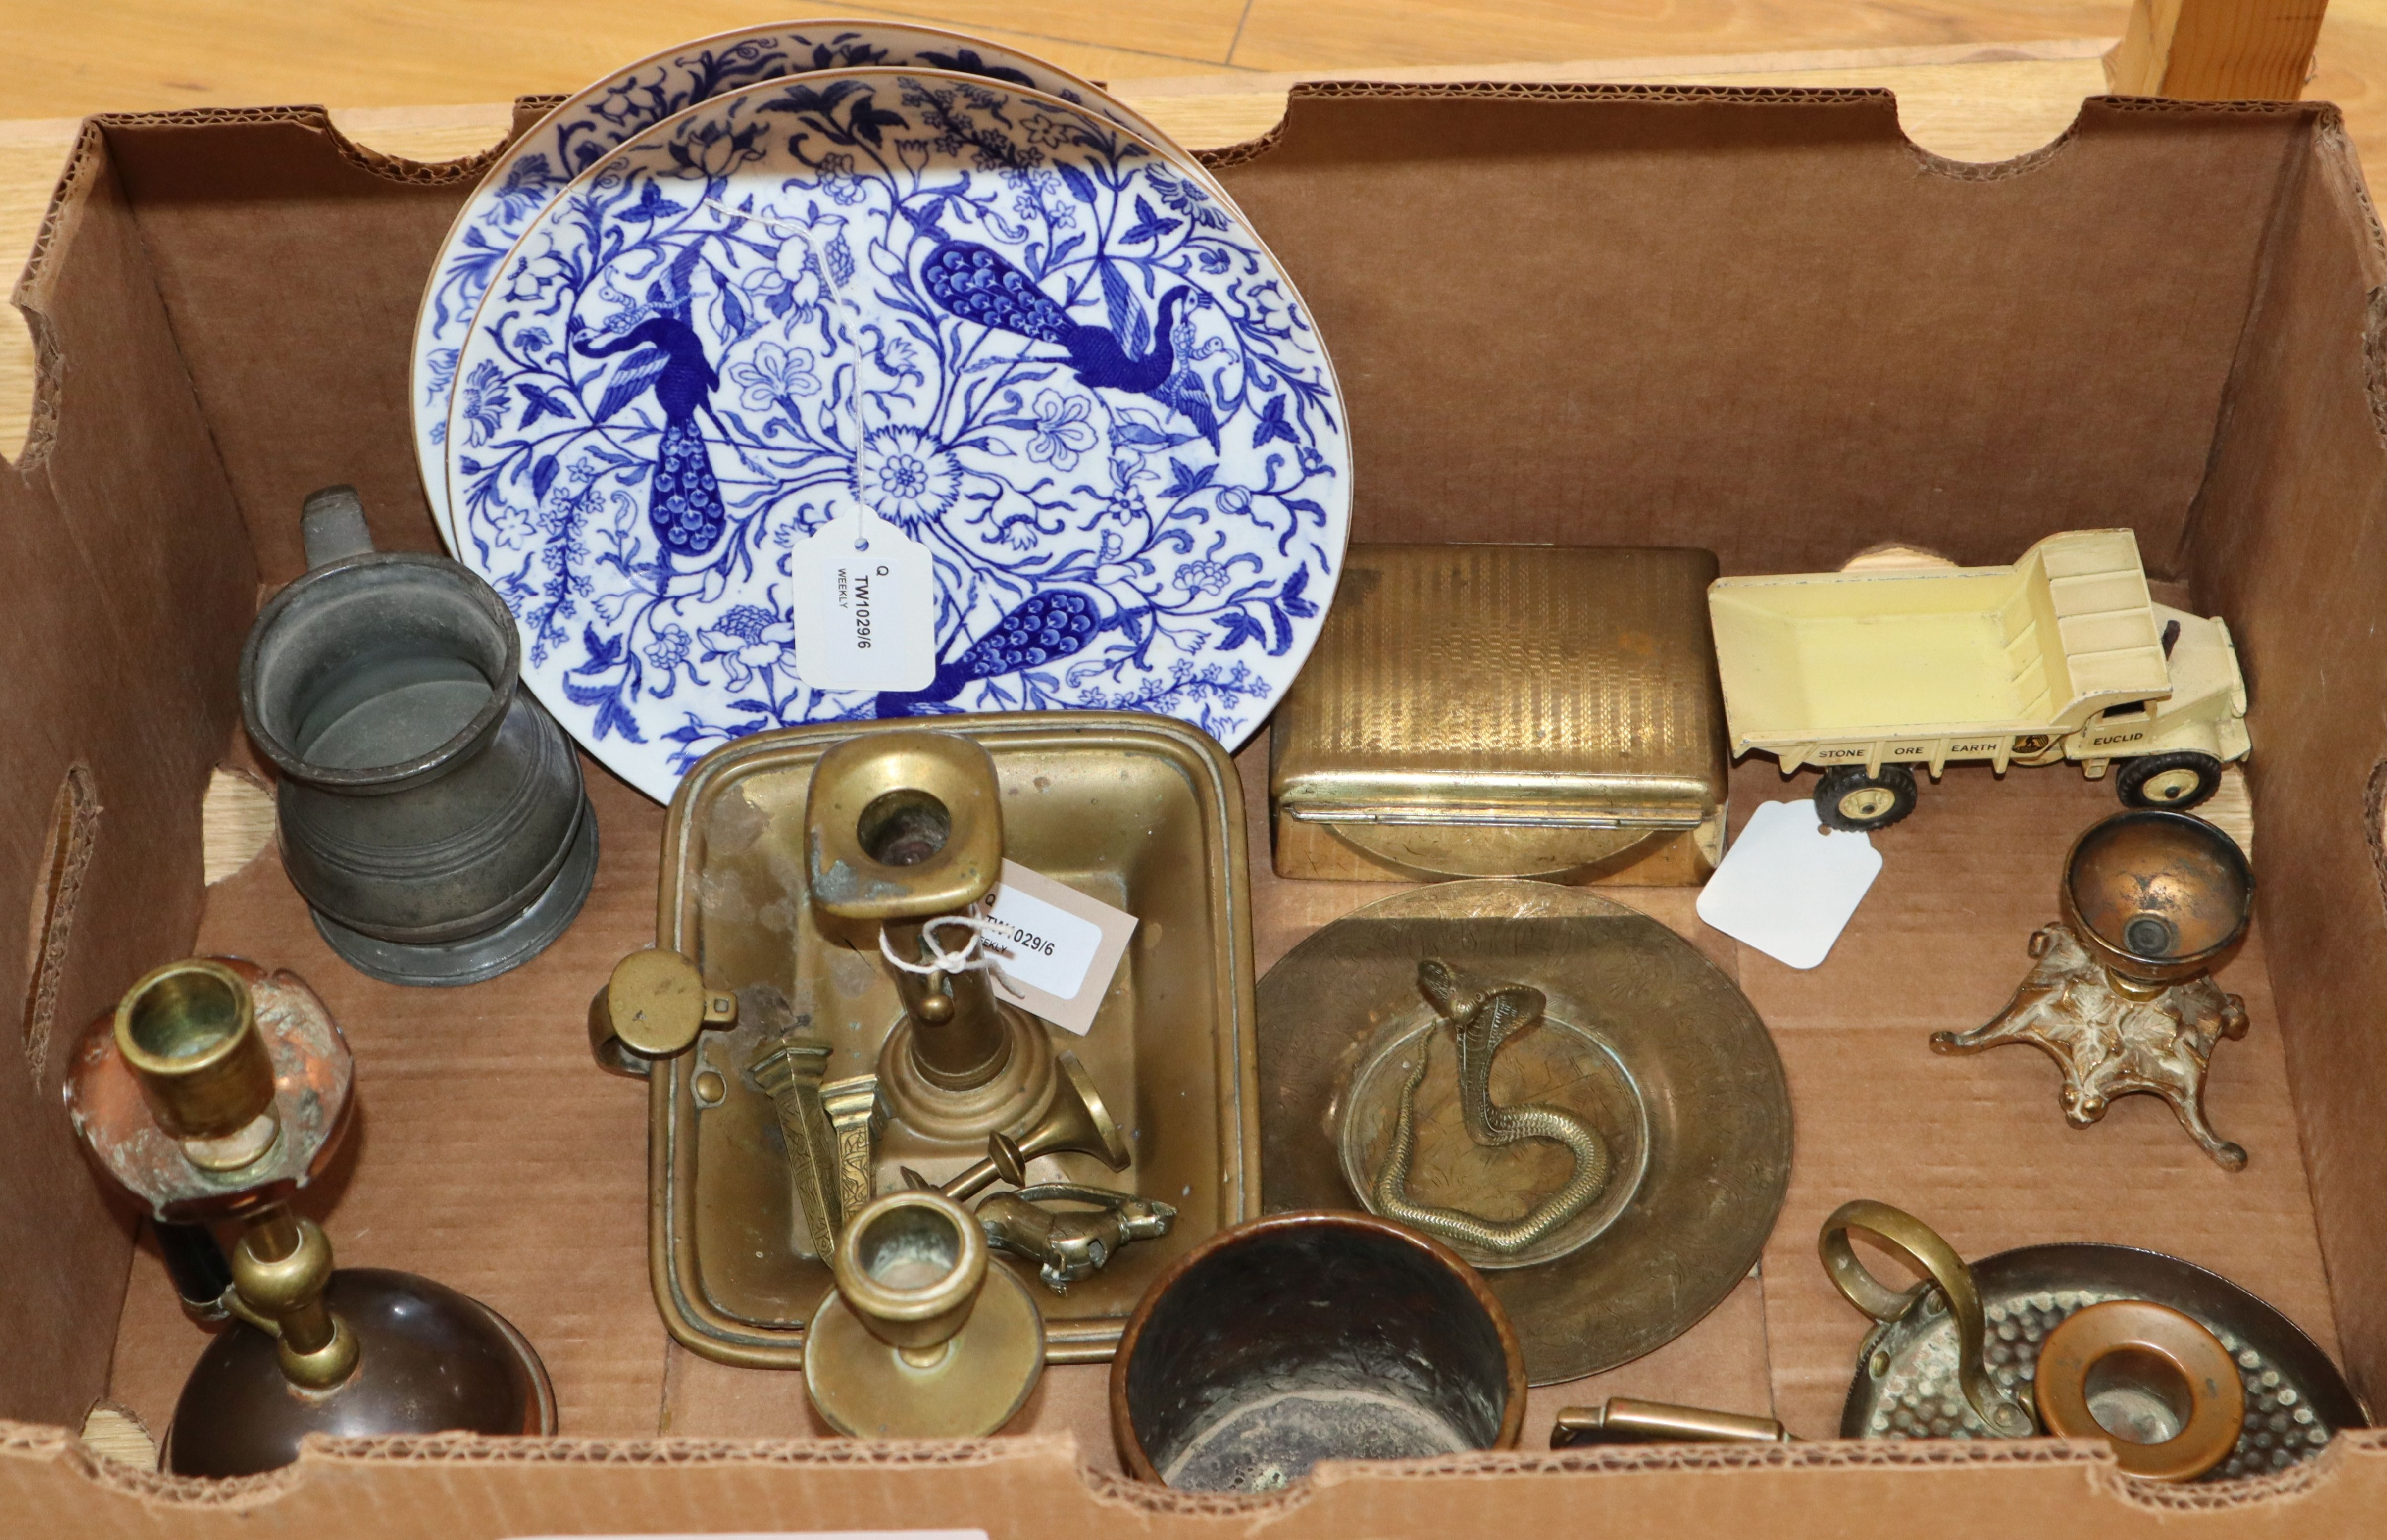 Lot 41 - A pair of Derby plates, a Meccano 'Euclid' dump truck and a small quantity of metalware